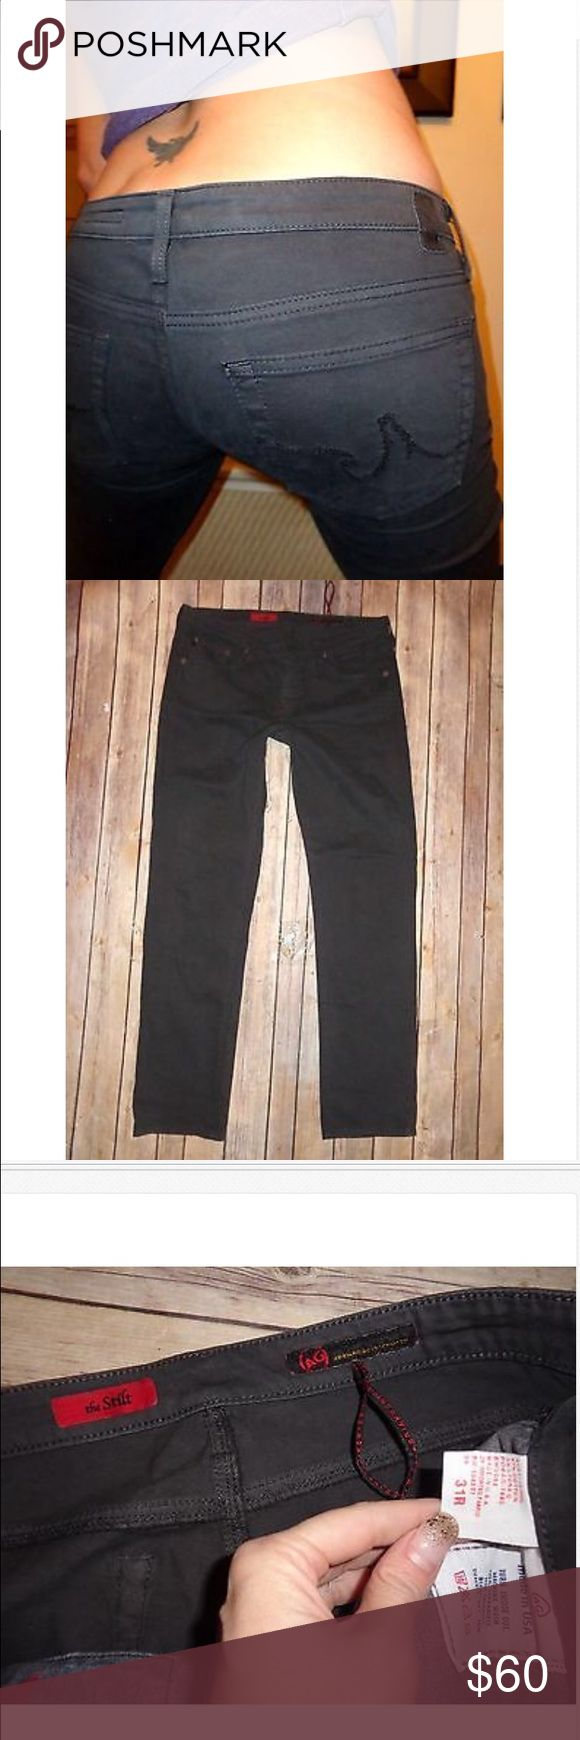 AG Adriano Goldschmied STILT Cigarette Pants 31 AG Adriano Goldschmied Low Rise Skinny Cigarette Leg Stretch Jeans! Great Used! 97% cotton & 3% spandex 17.5 across & 8.5 rise AG Adriano Goldschmied Pants Skinny